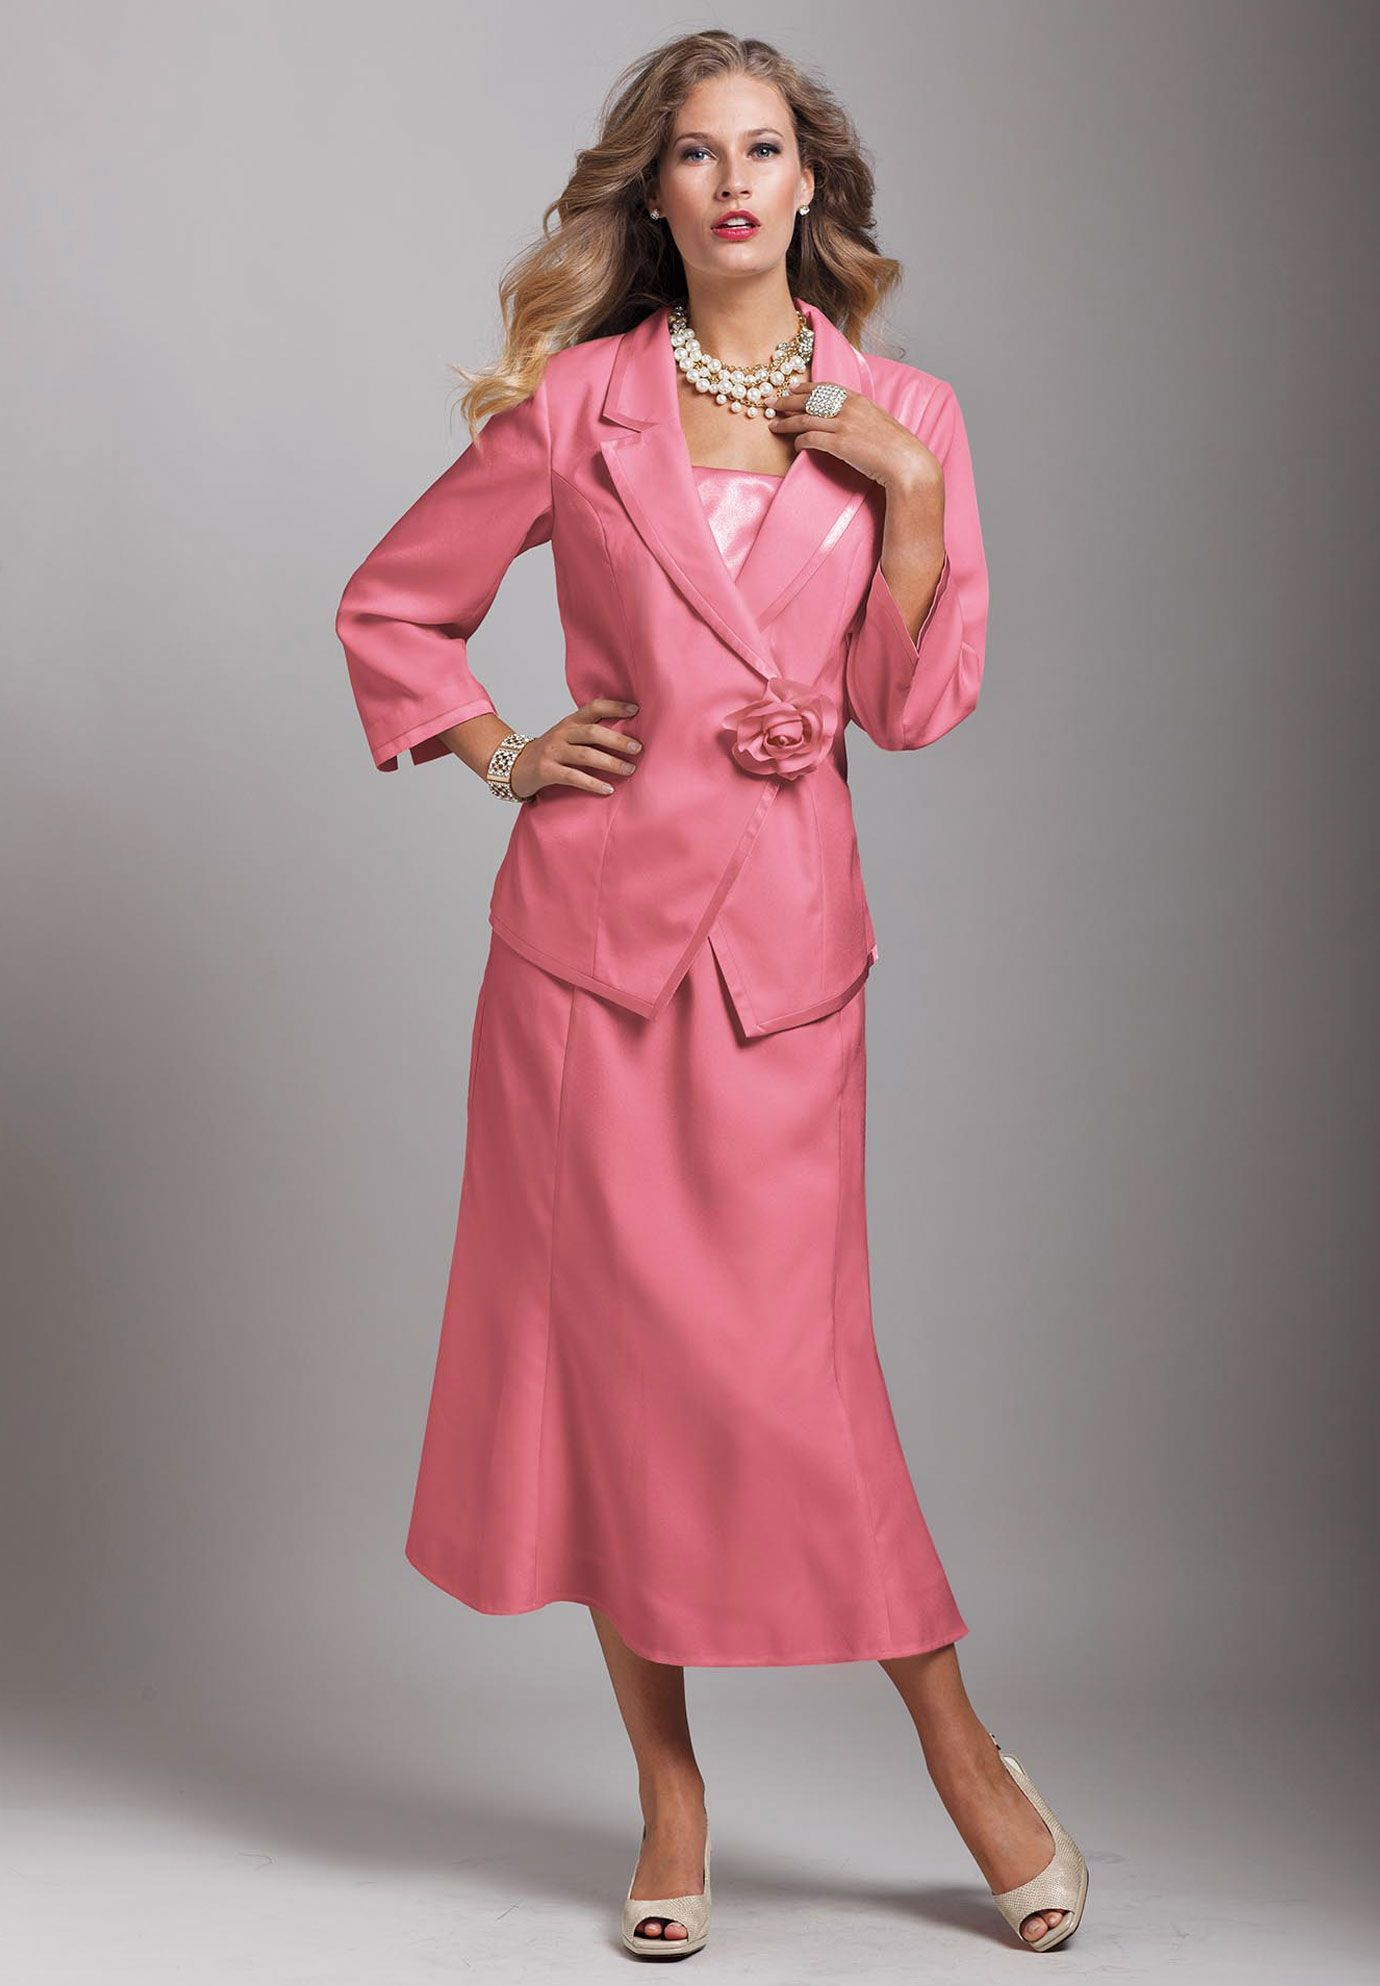 Pink ) Tall clothing, Plus size women, Plus size outfits